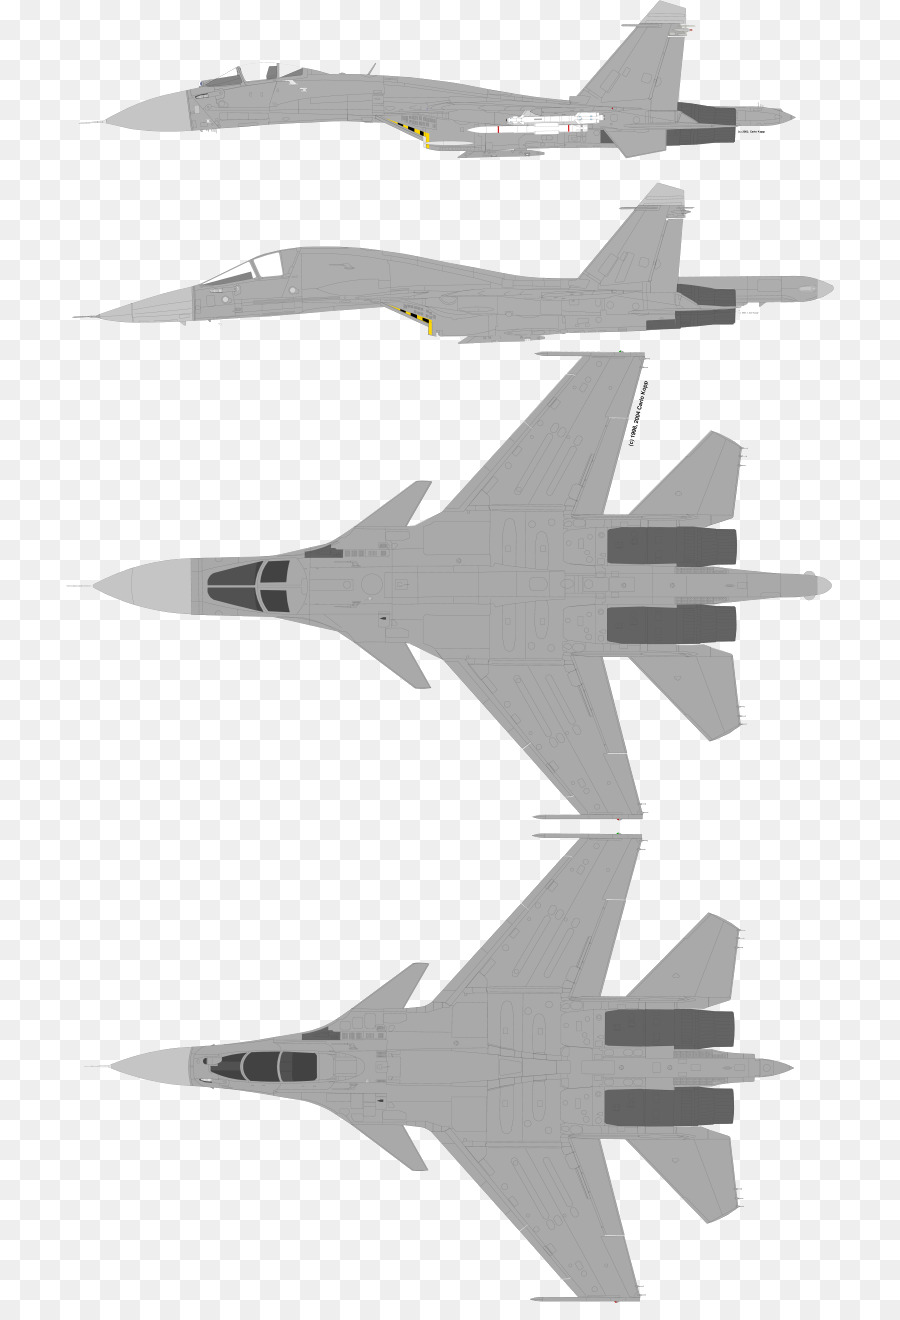 Russian sukhoi su-27 jet clipart black and white svg black and white library Cartoon Airplane png download - 768*1303 - Free Transparent ... svg black and white library